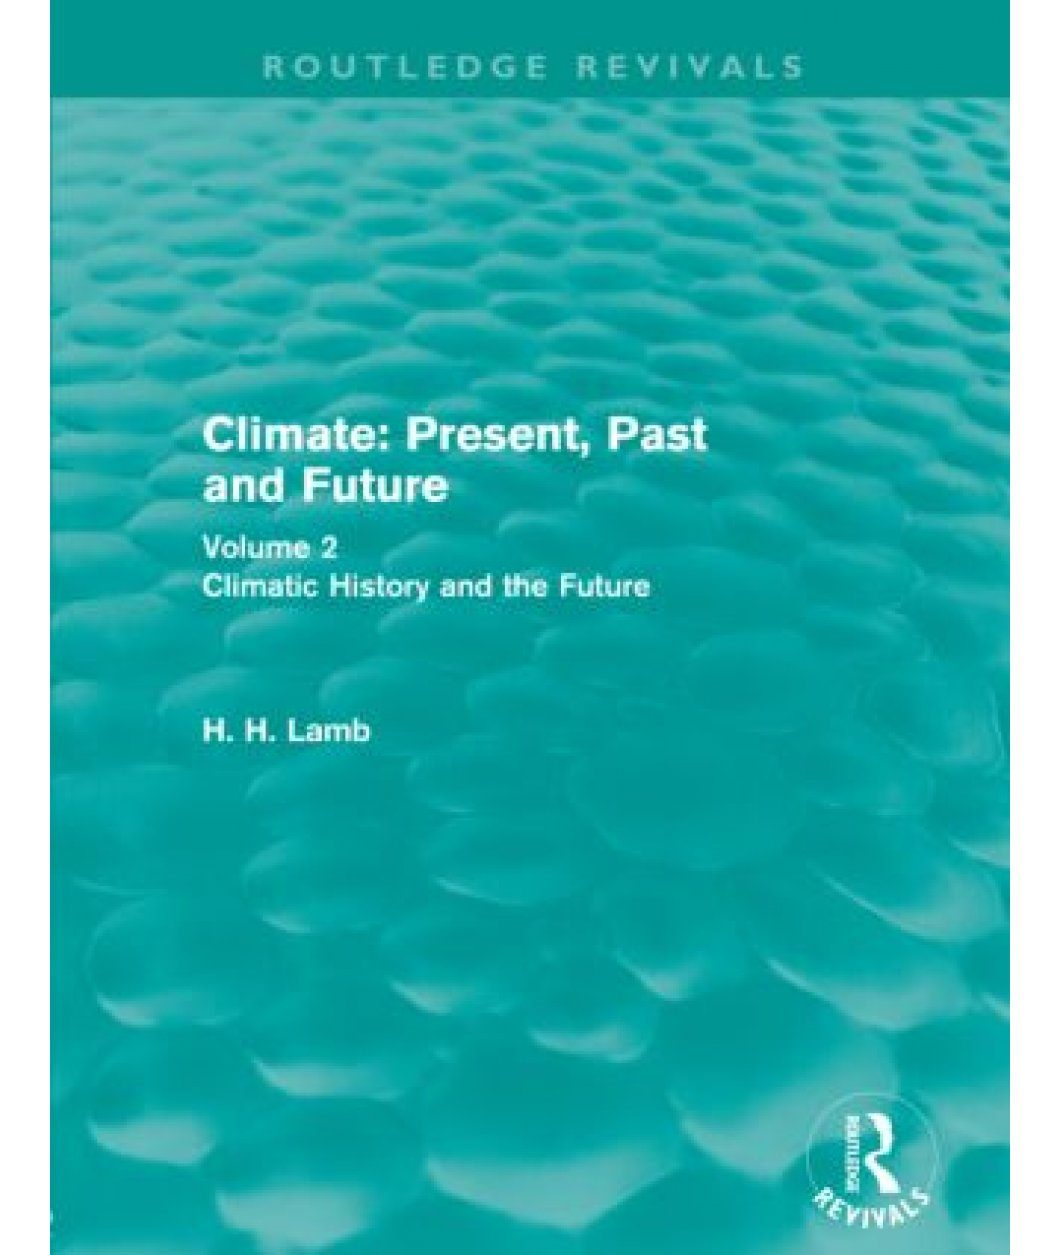 Climate: Present, Past and Future, Volume 2